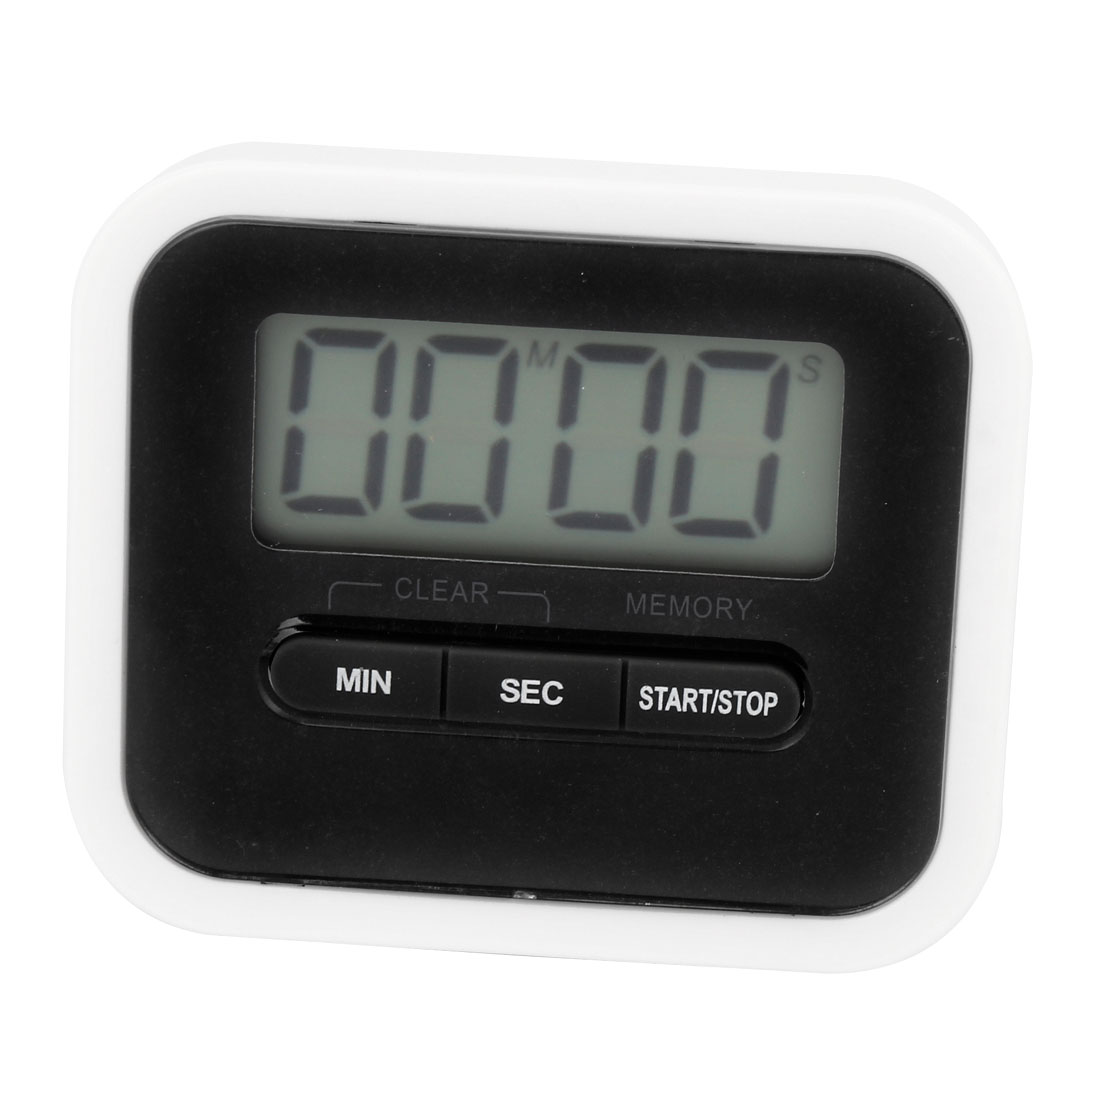 Kitchen Cooking 99 Minute 59 Second Jumbo Display Countdown Timer Alarm